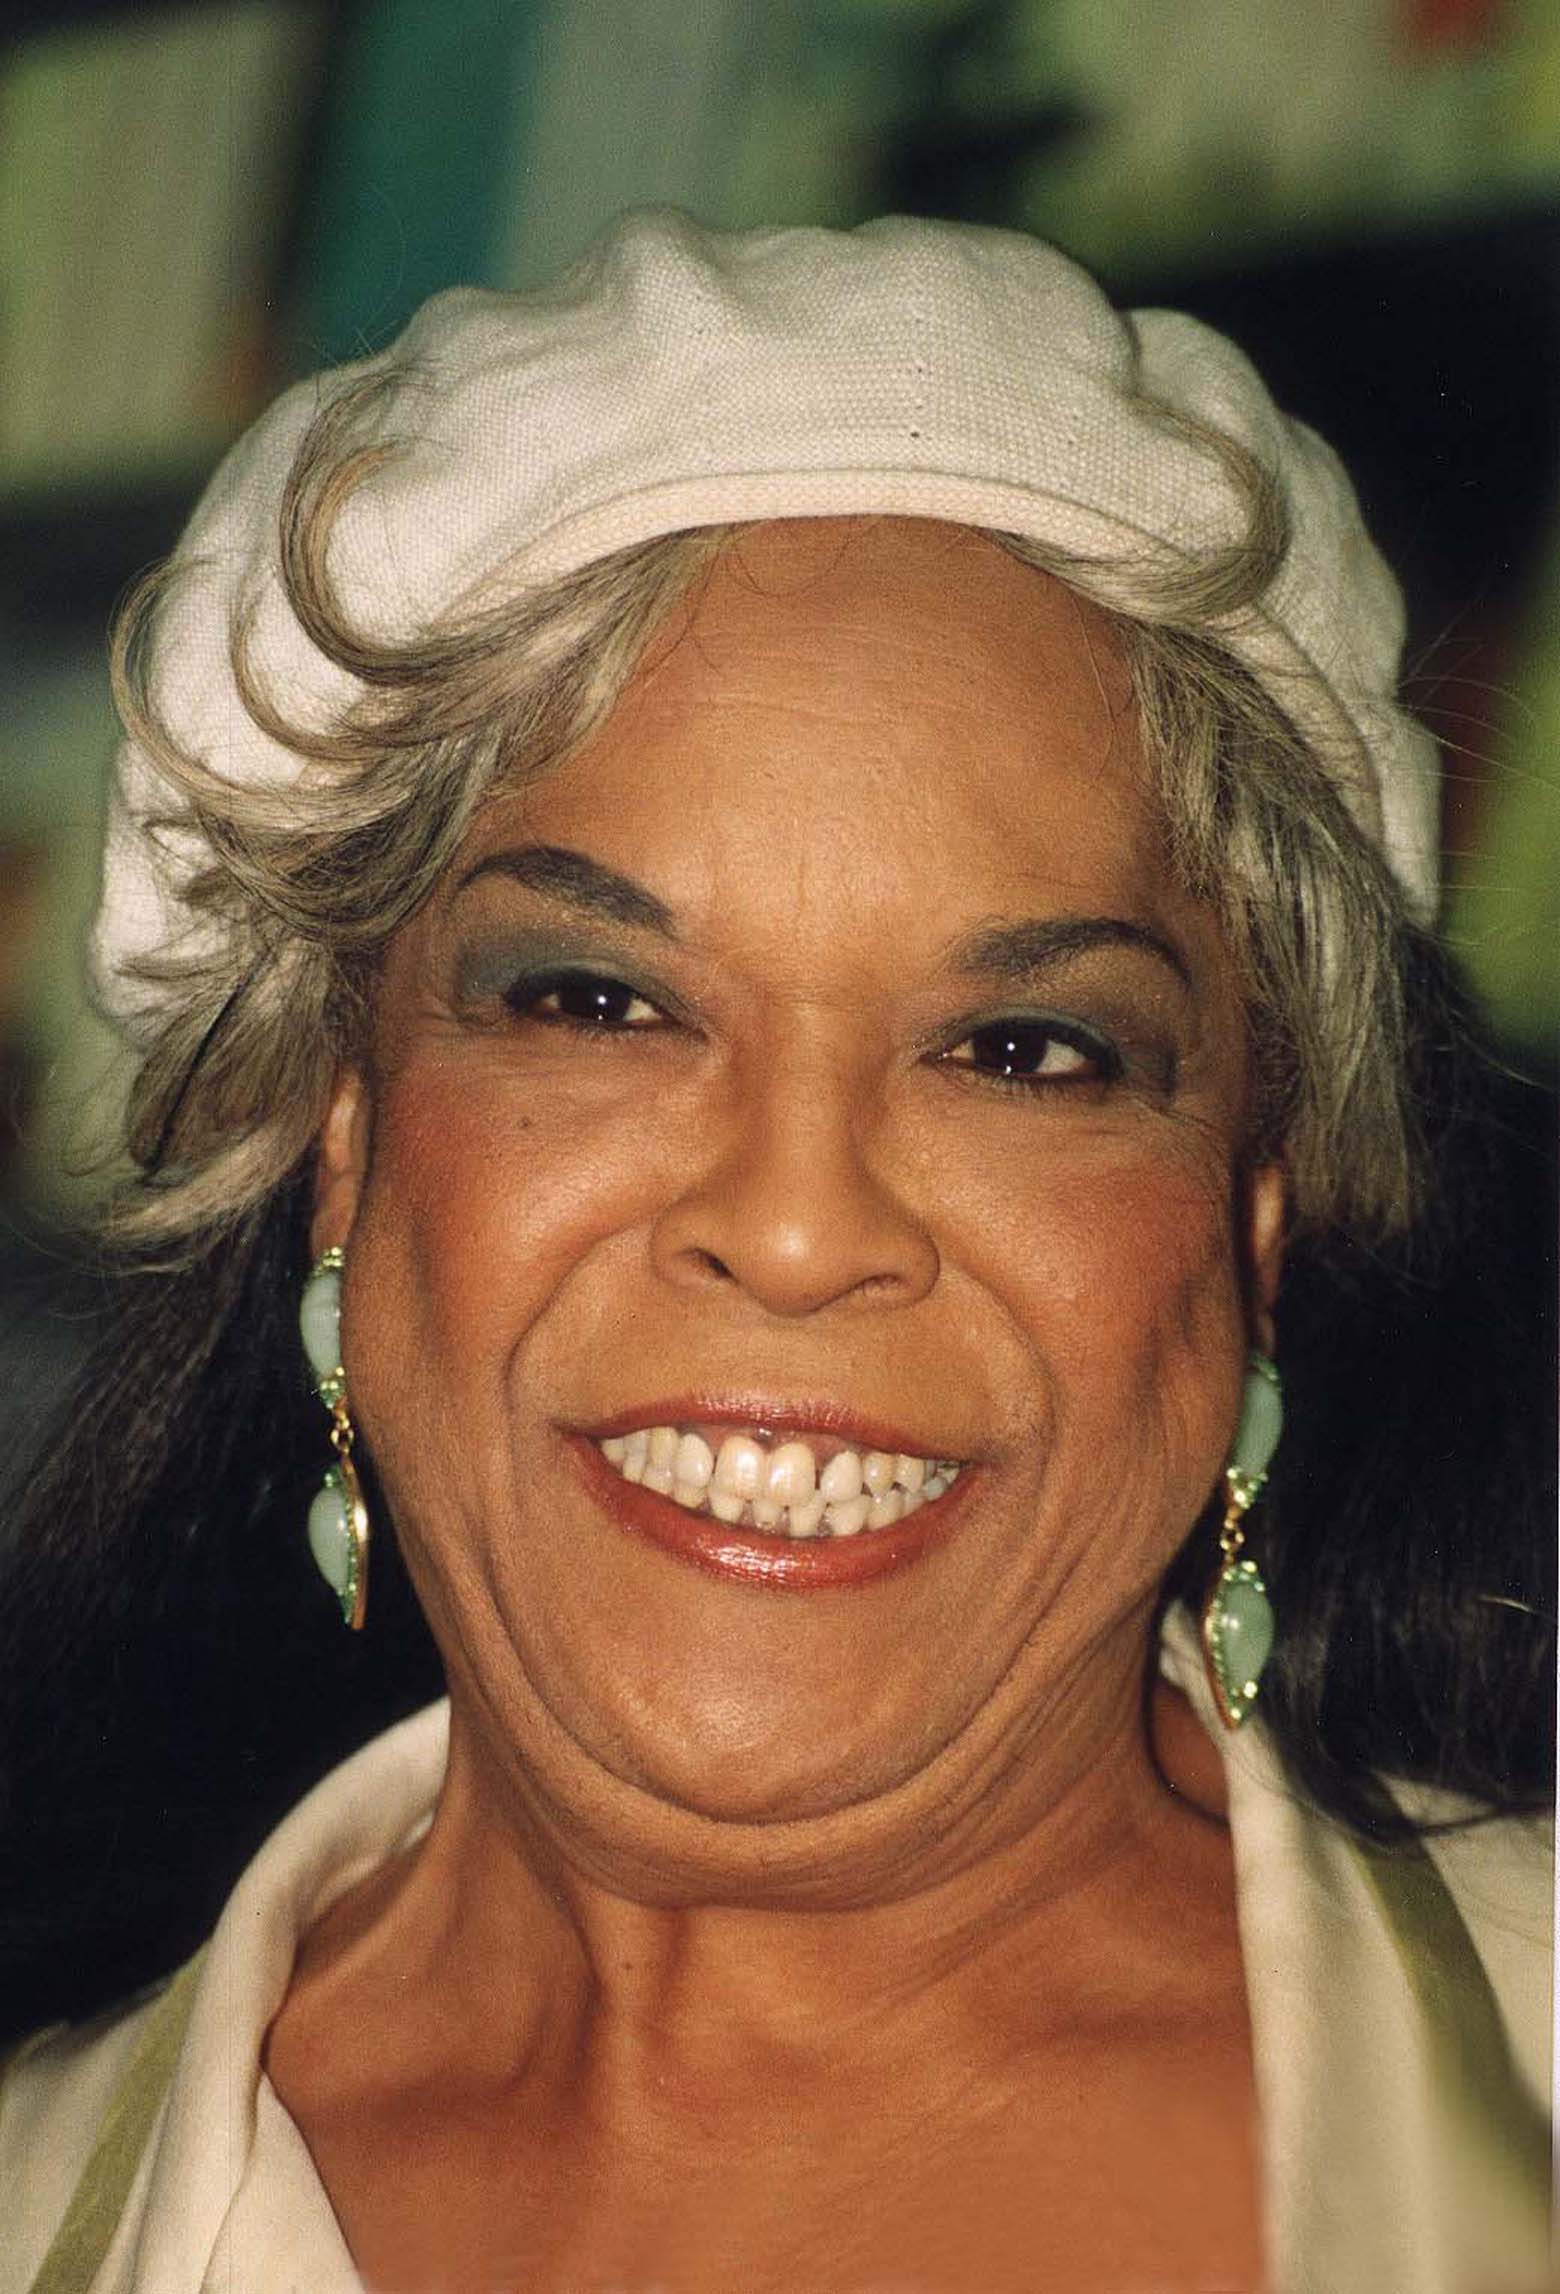 della reese - the story of the bluesdella reese - the story of the blues, della reese come on a my house, della reese - and that reminds me, della reese don't you know, della reese line, della reese songs, della reese c'mon and hear, della reese wiki, della reese whatever lola wants, della reese don't you know live, della reese it's magic, della reese best songs, della reese, della reese movies, della reese age, della reese young, della reese died, della reese walk with you, della reese find a grave, della reese rose